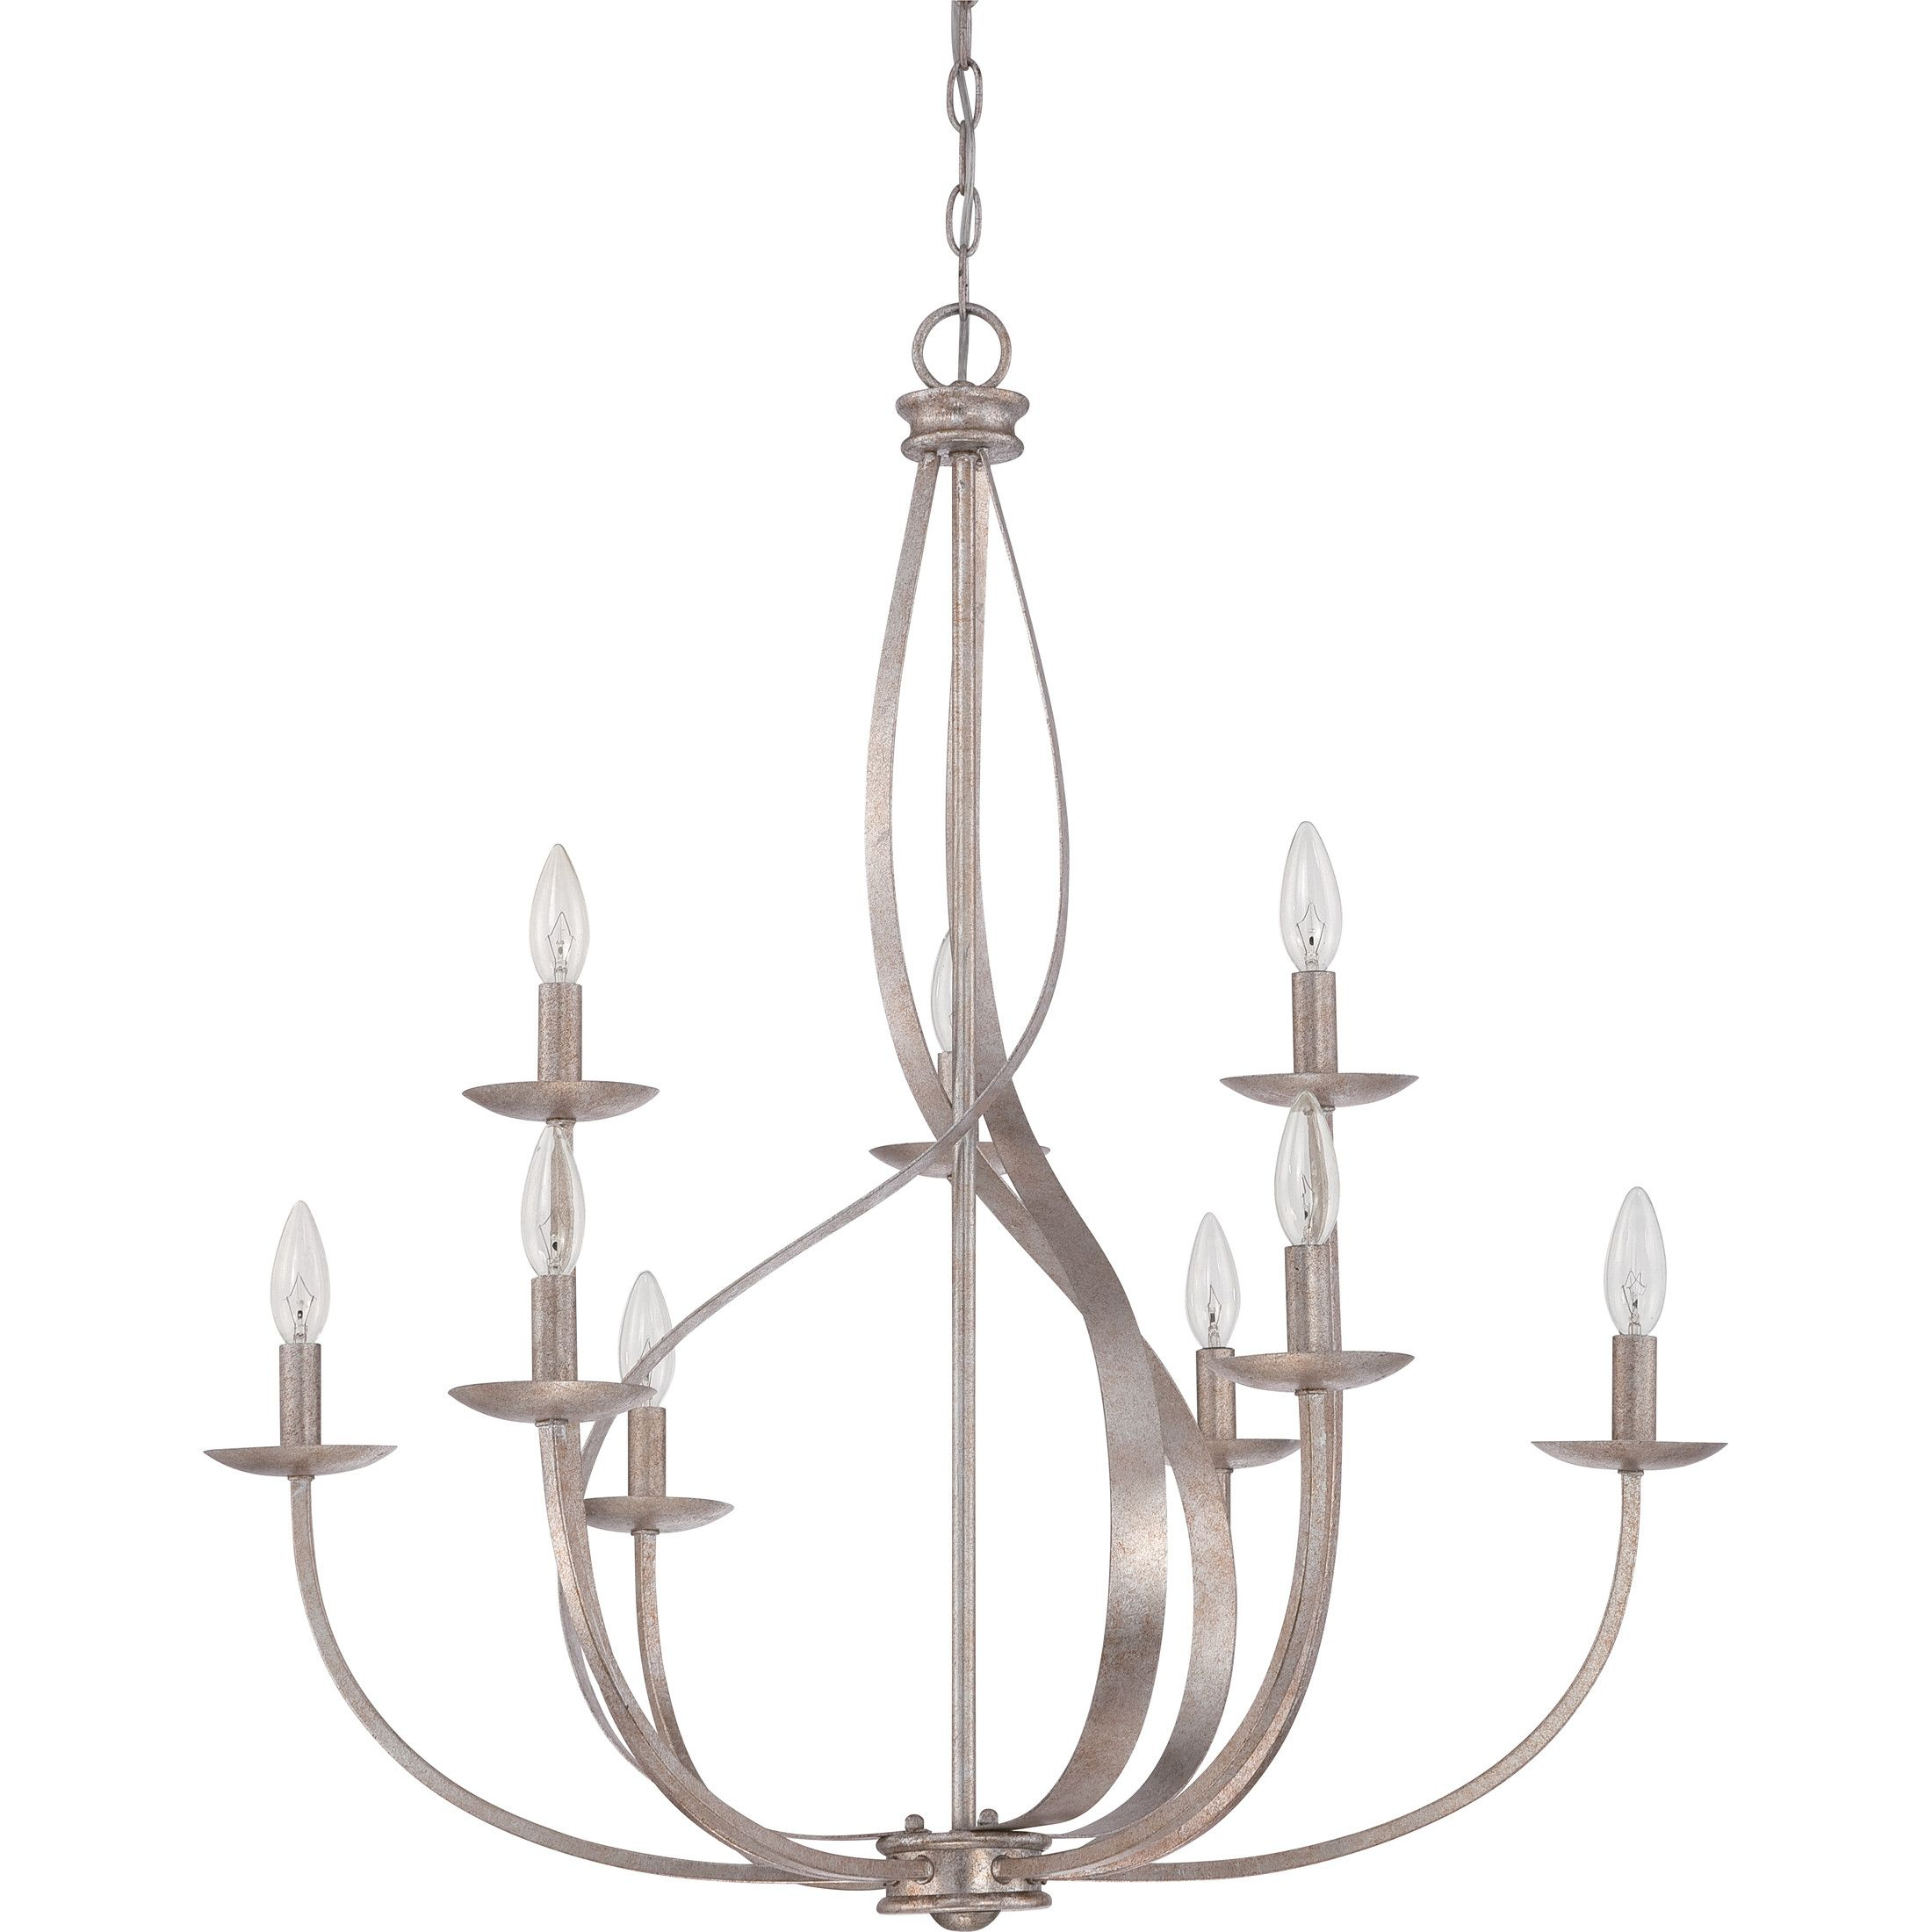 Lark Manor™ Emely 9-Light Candle-Style Chandelier | Lighting for Camilla 9-Light Candle Style Chandeliers (Image 19 of 30)